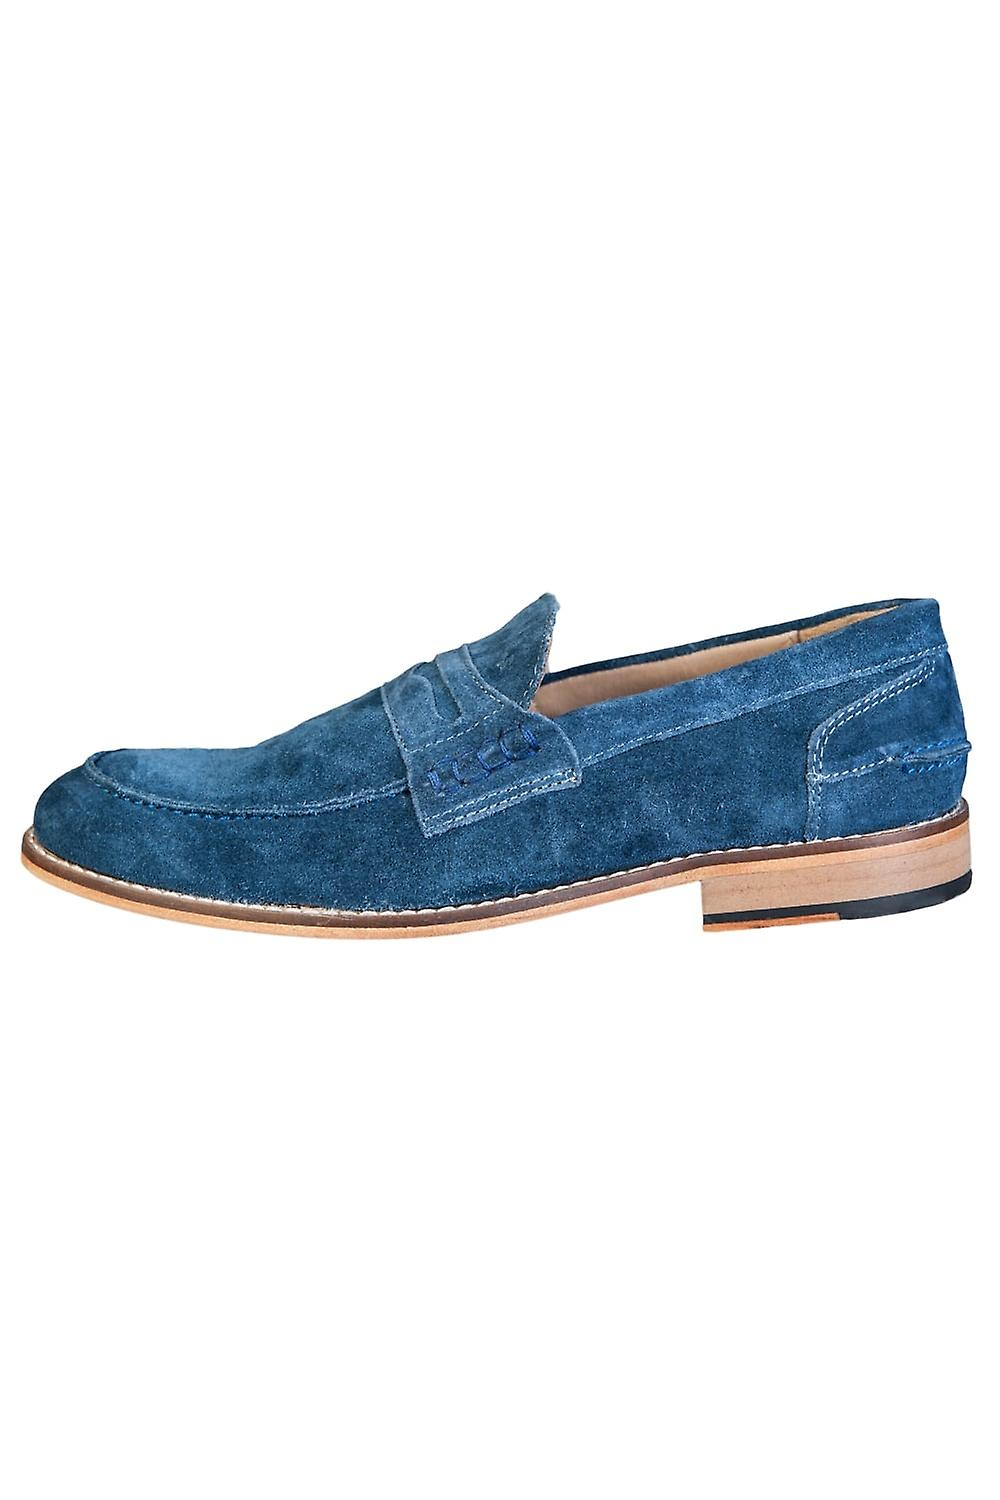 John White Loafers Shoes NELSON-JEAN